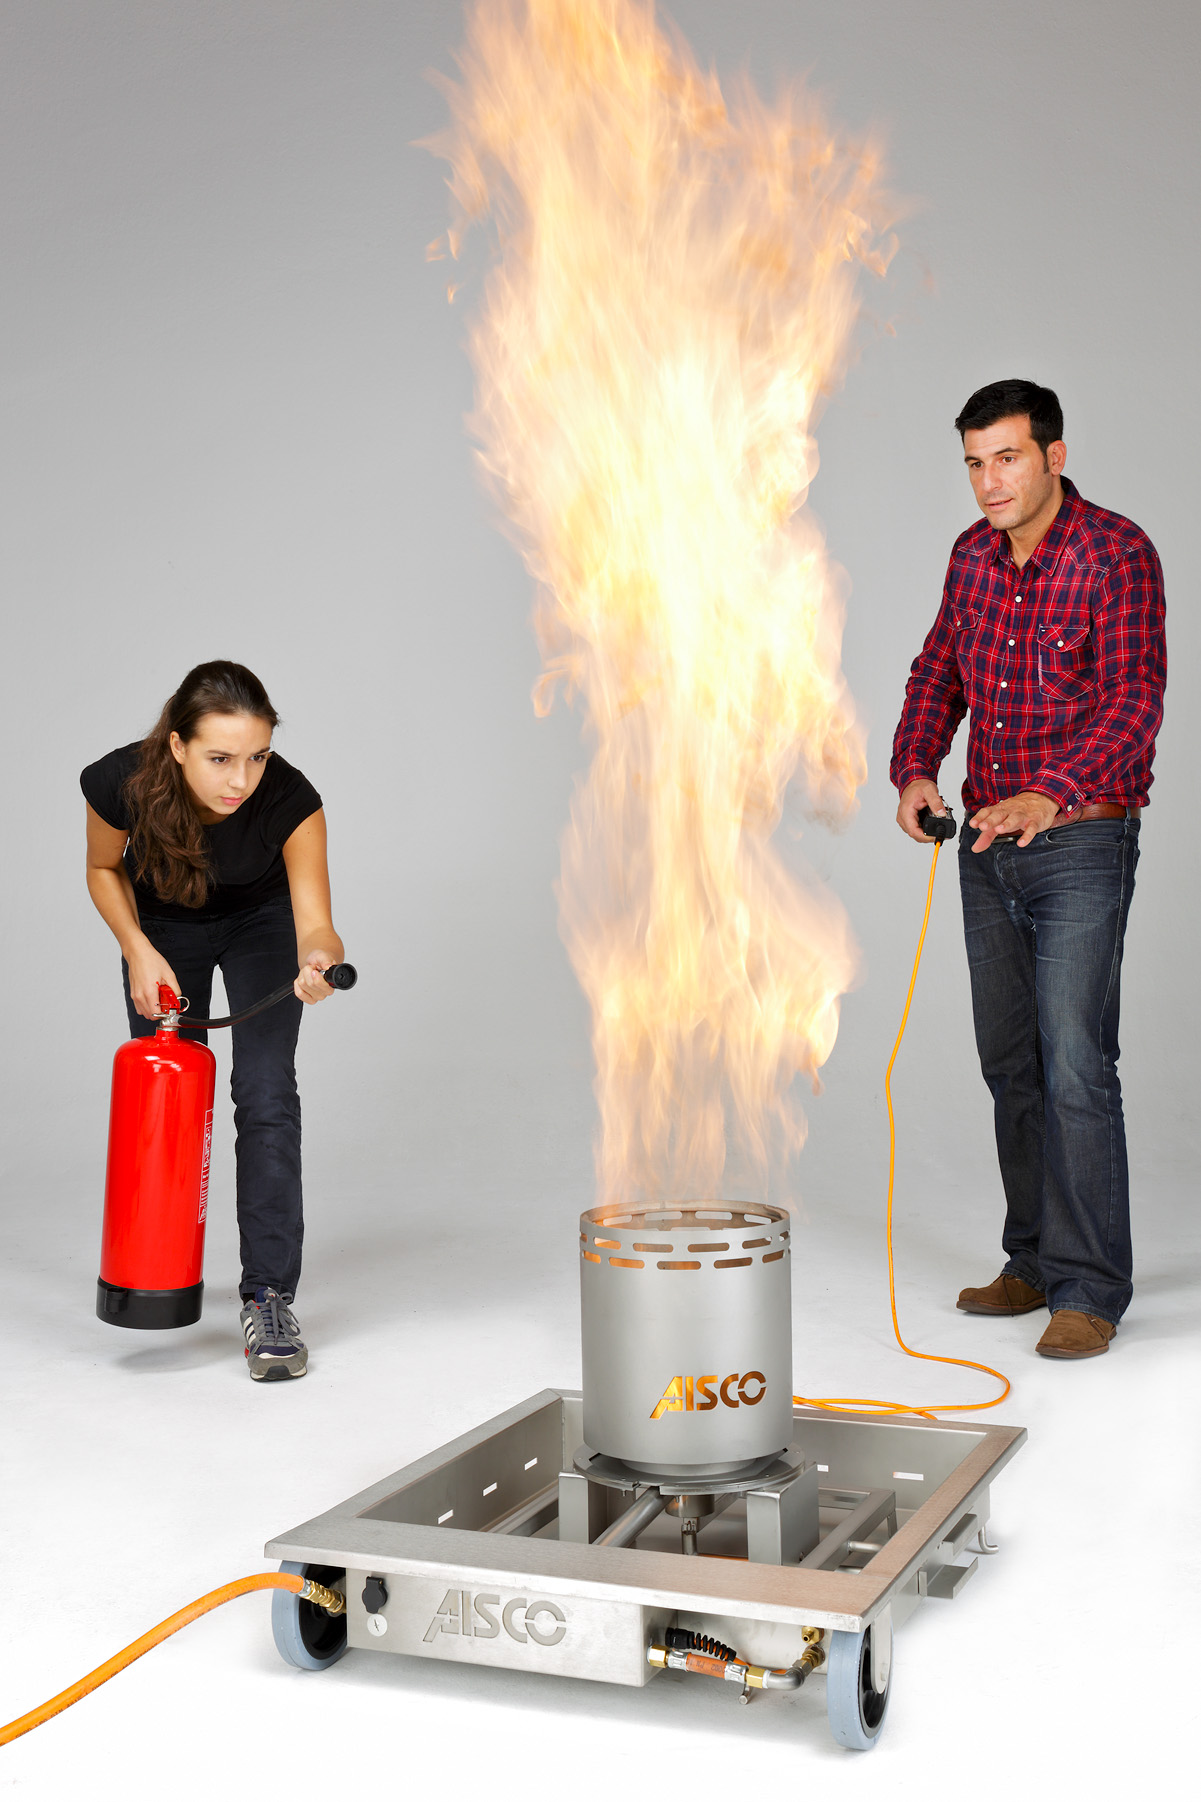 AISCO Firetrainer - Fire Trainer E 100 mit PSF 3in1